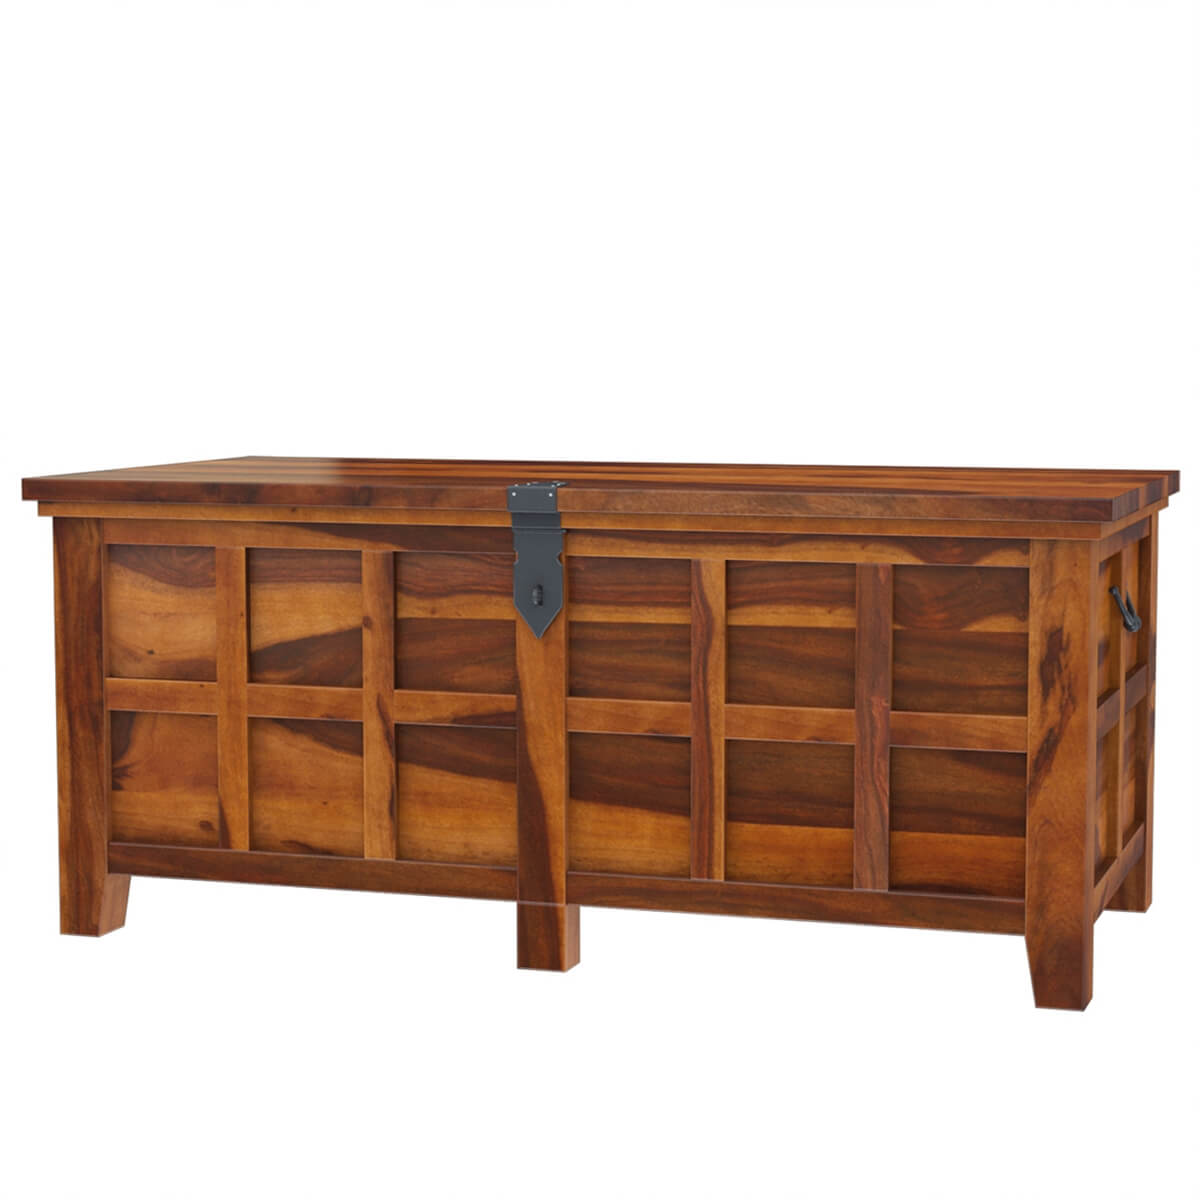 Bedroom Trunk 28 Images Retro Recycled Furniture Inspired By Steamer Trunks Bedroom Chests